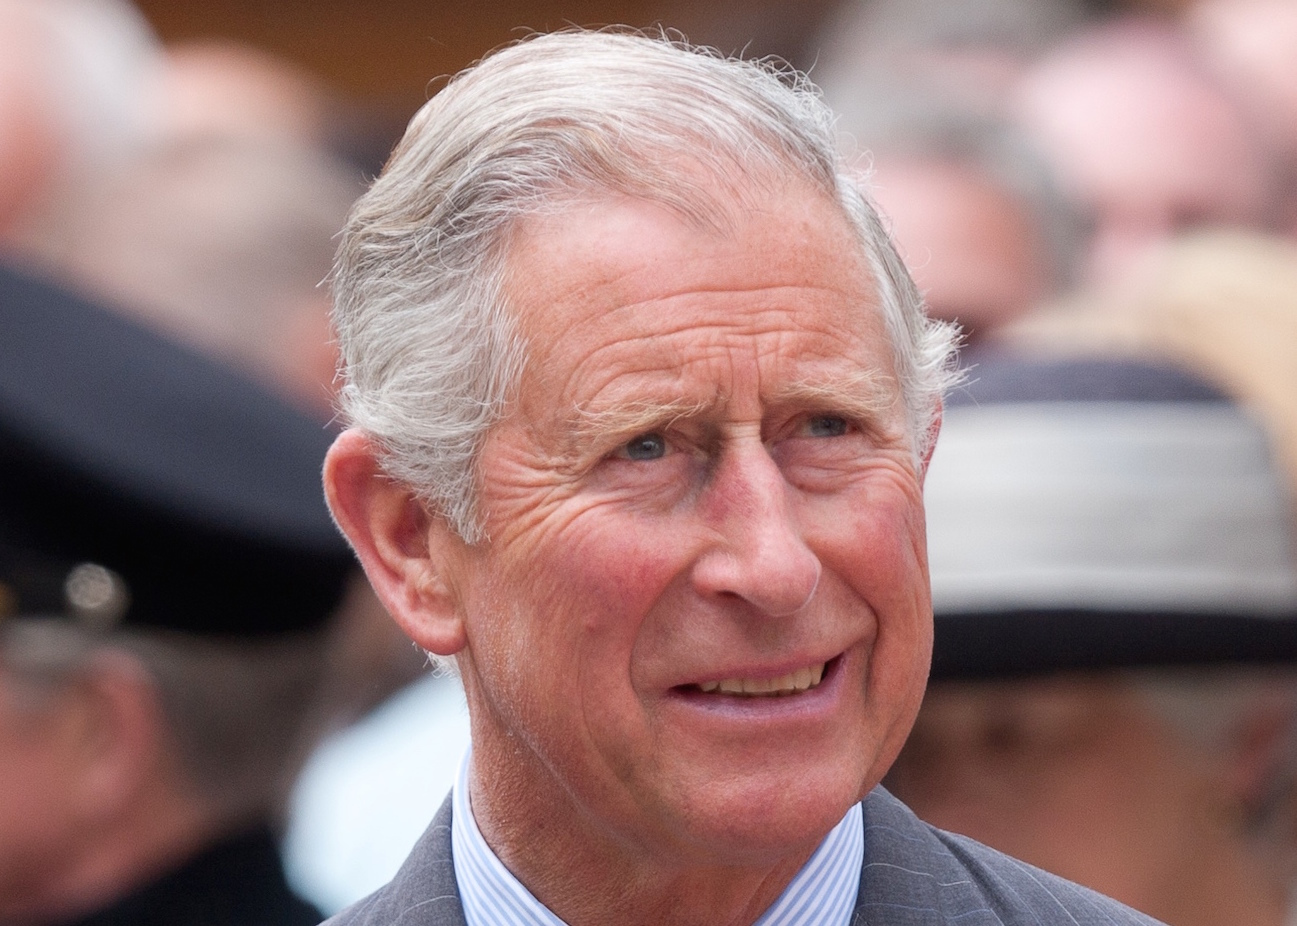 Prince charles giant face